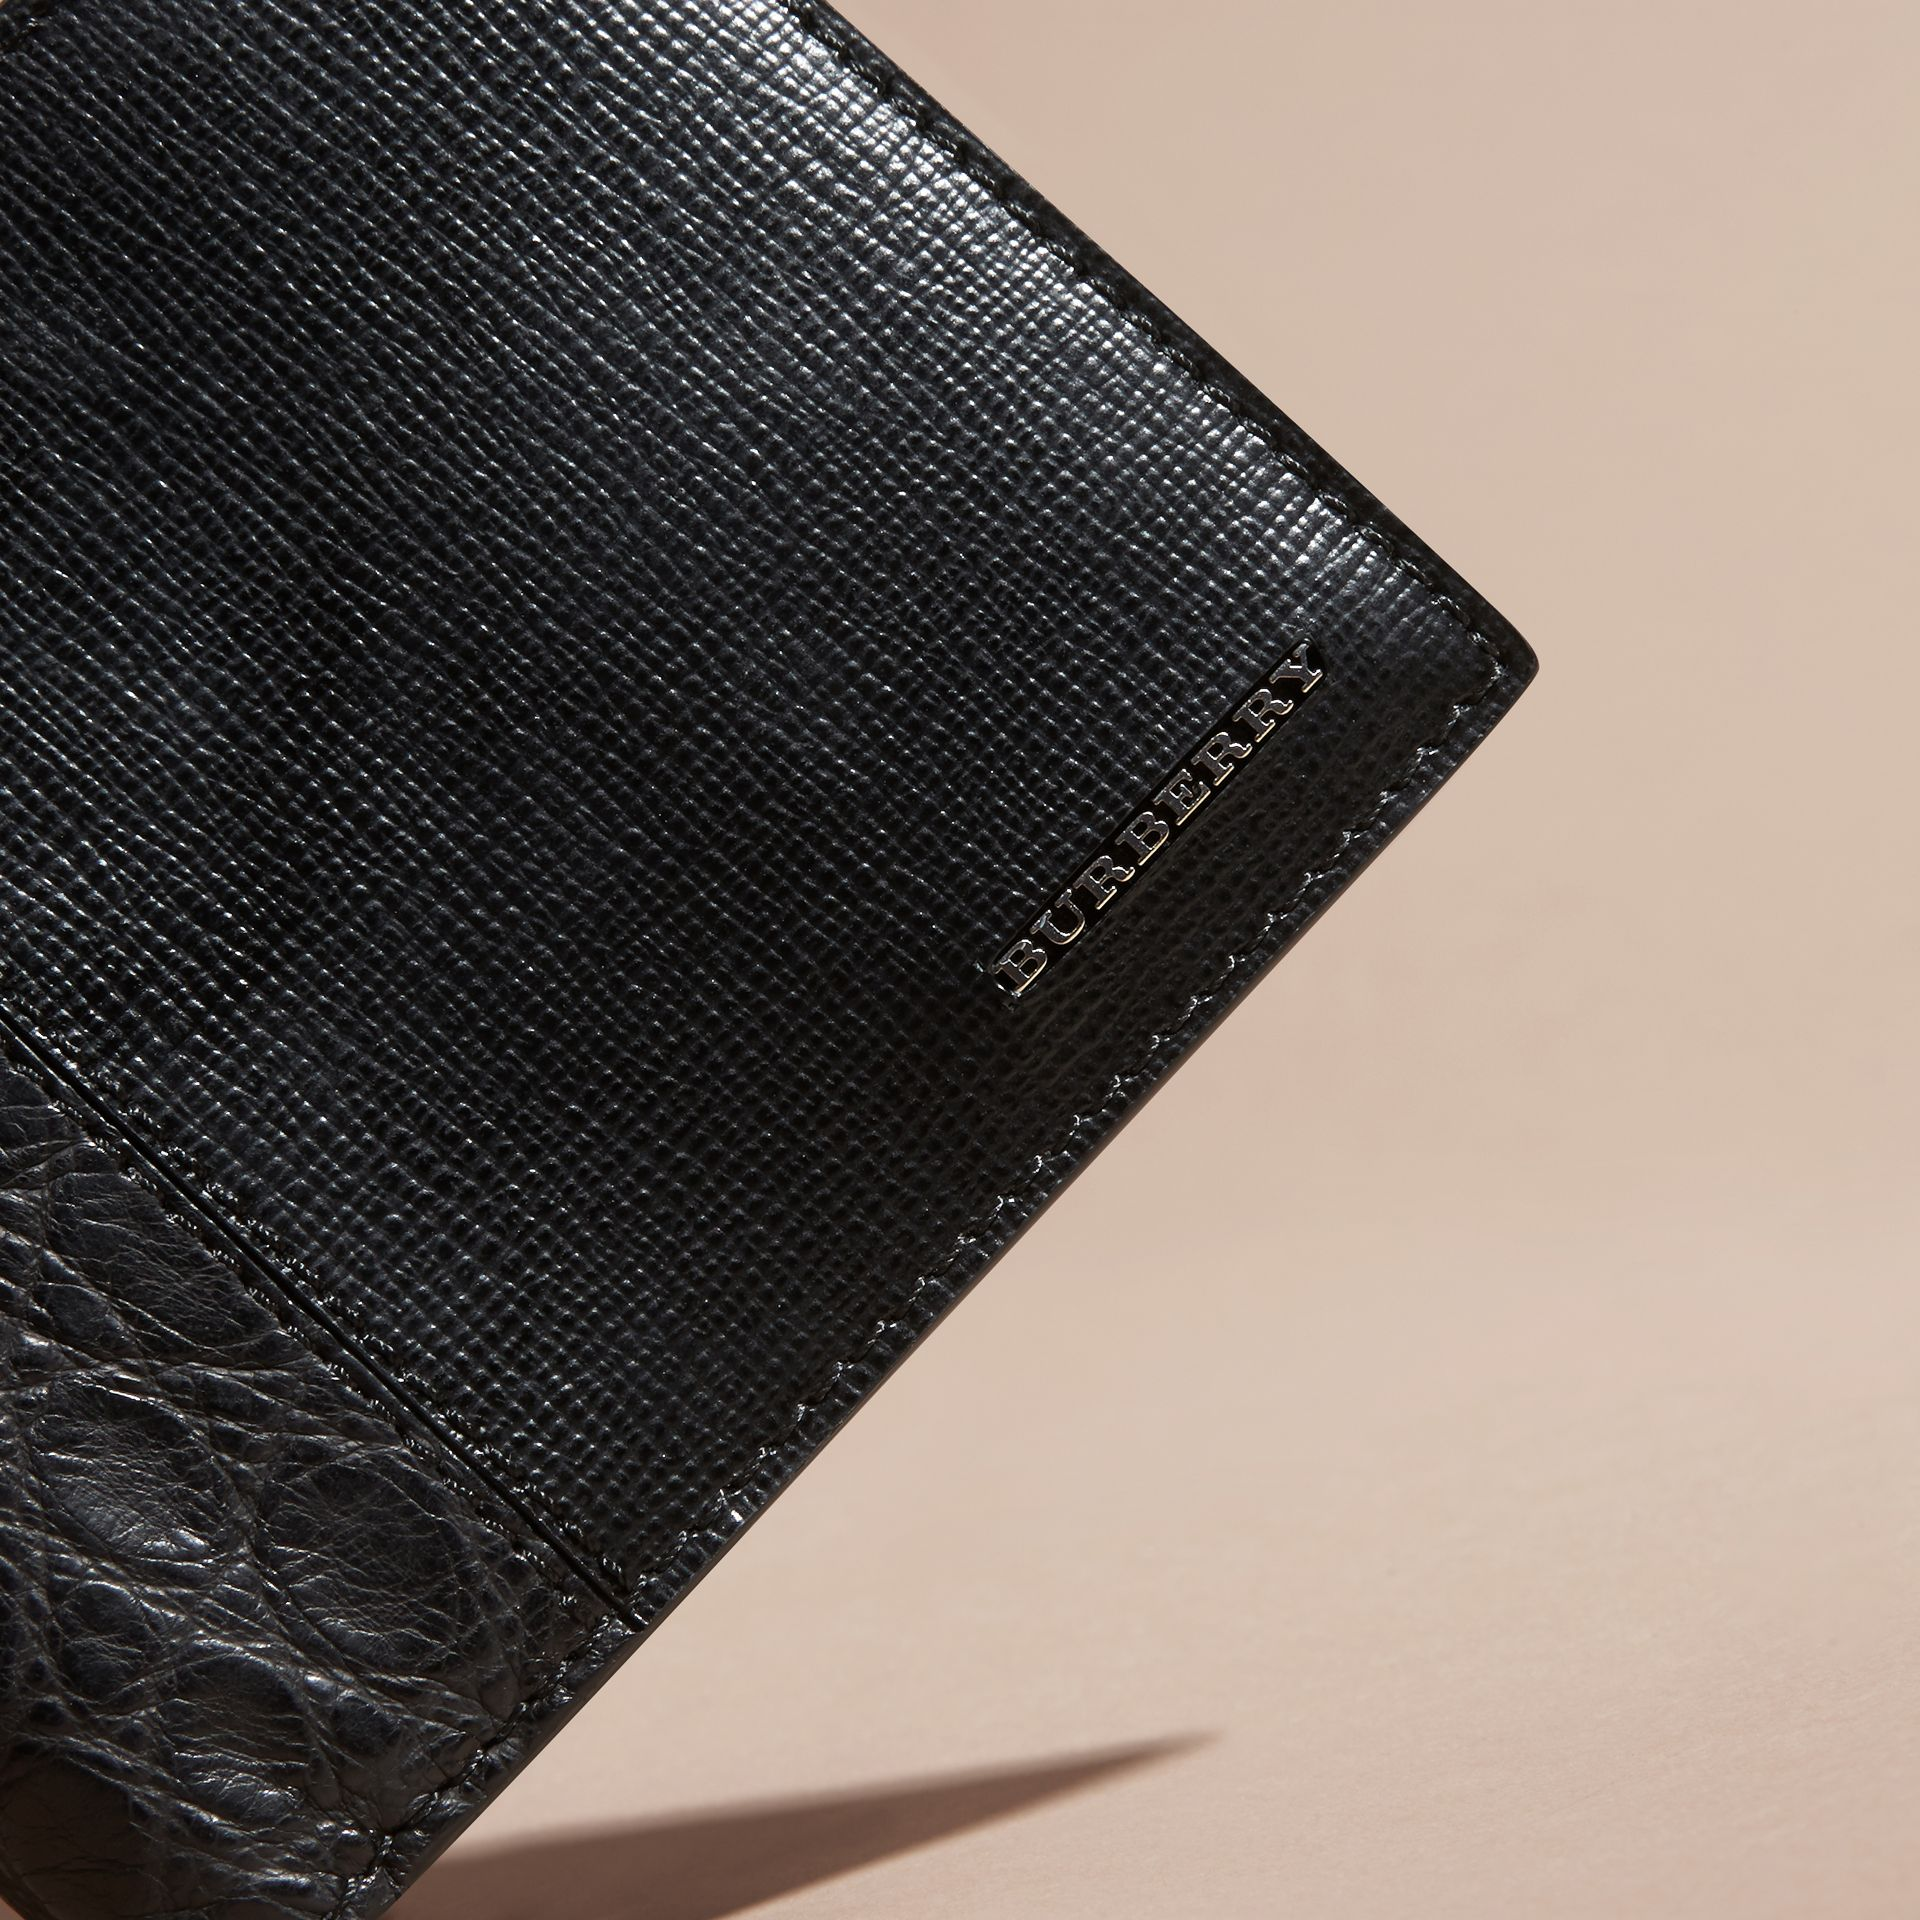 Leather and Alligator International Bifold Wallet in Black - Men | Burberry Australia - gallery image 2